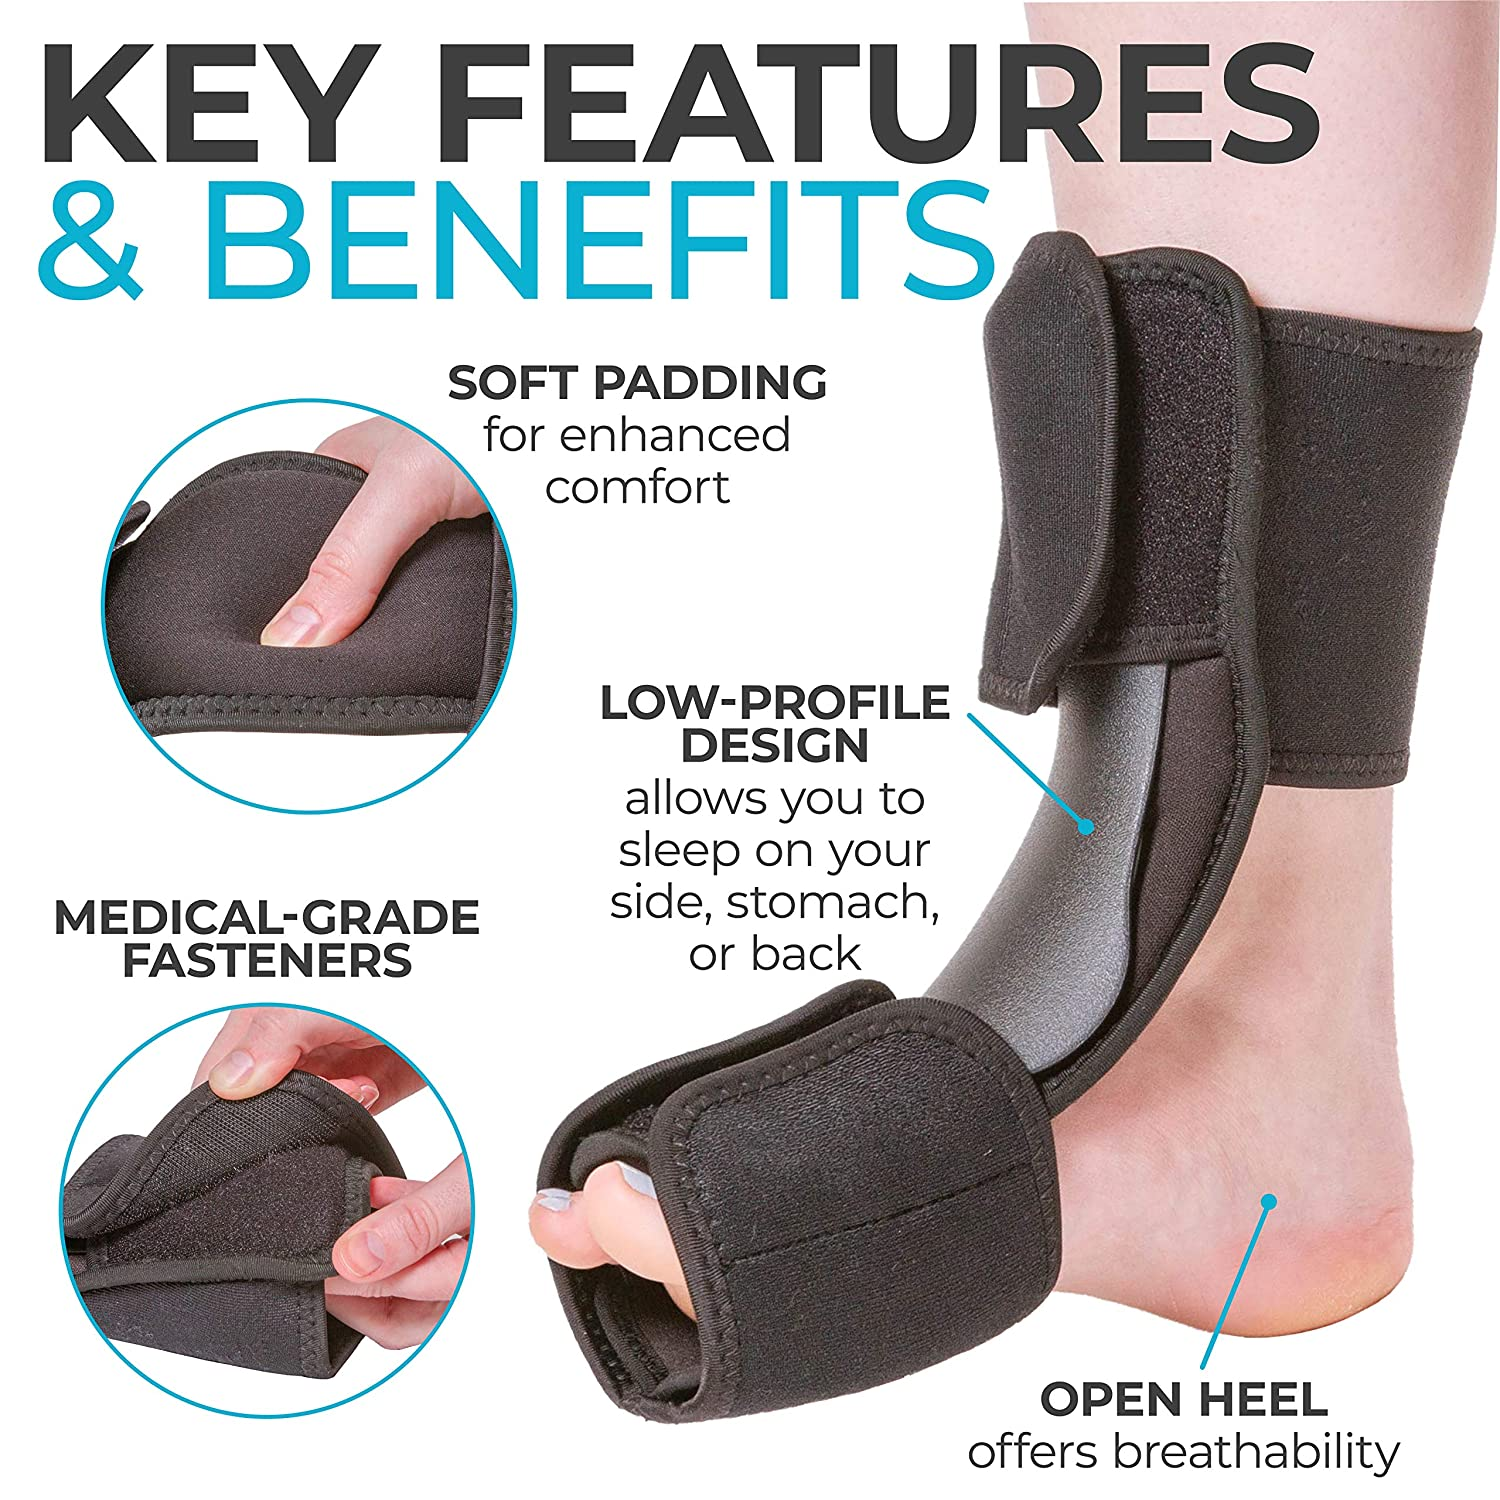 8ff90f088766 ... Fasciitis Pain Relief, Foot Drop Brace for Sleeping, and Achilles  Tendon Stretcher Boot for Nighttime Ankle Dorsiflexion (S/M): Health &  Personal Care